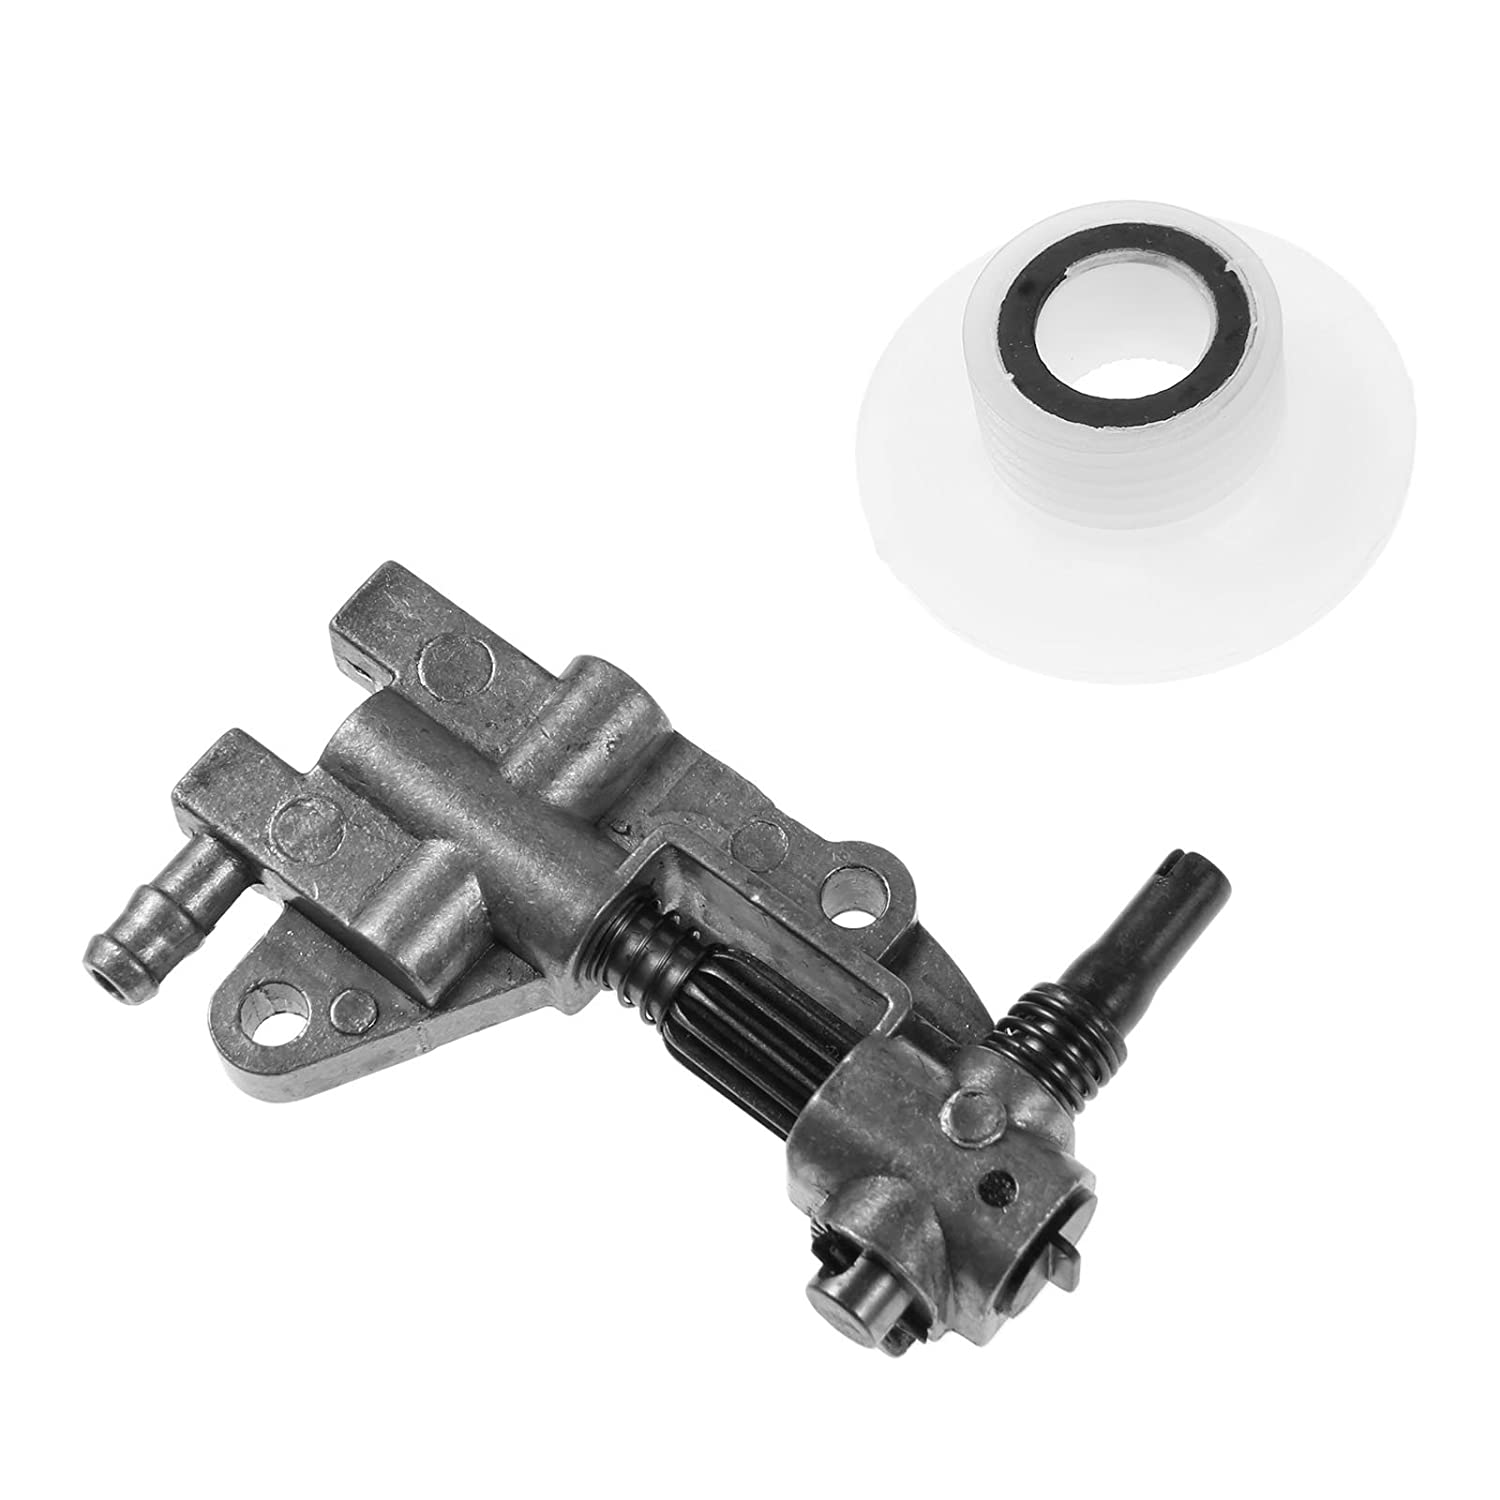 Oil Pump Replacement fit for Chinese Chainsaw 4500 5200 5800 45CC 52CC 58CC